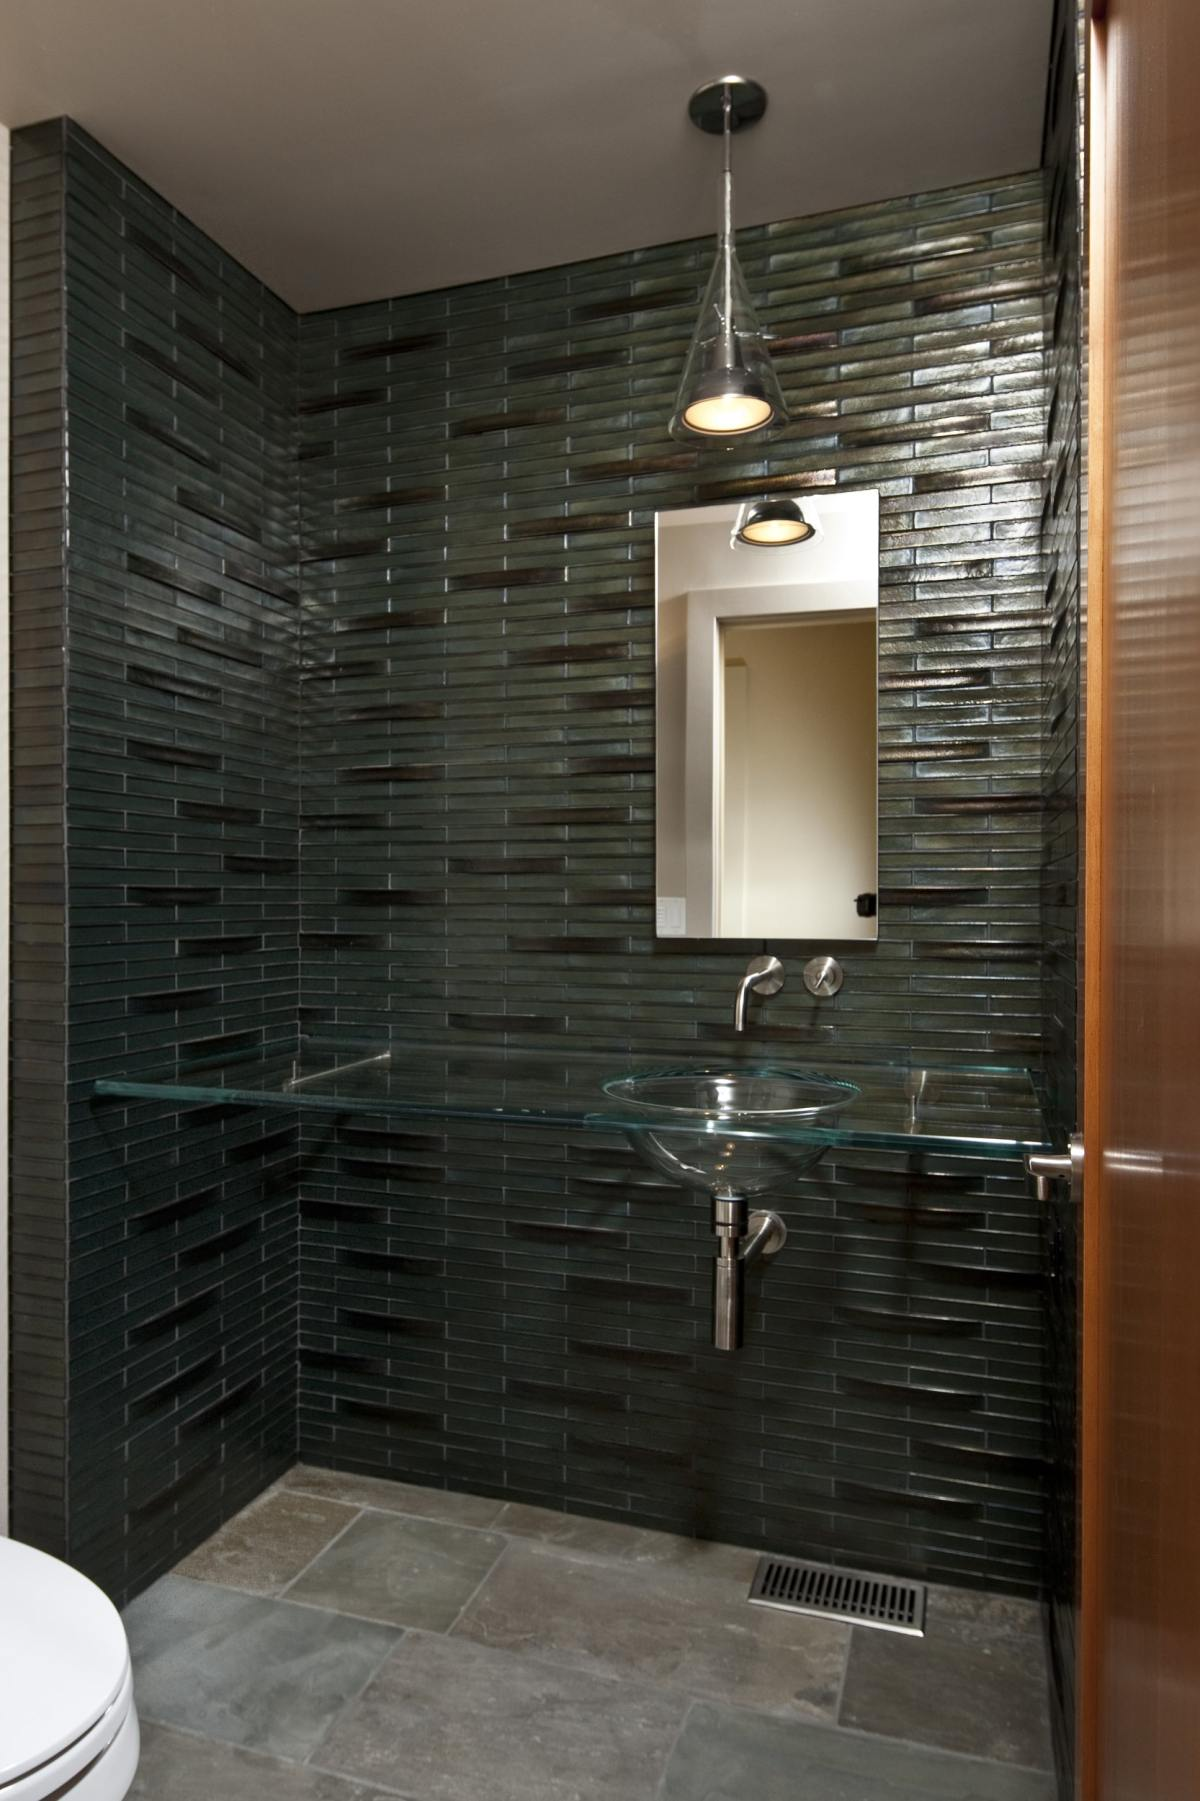 Dark green tile vanity wall with clear glass counter & sink